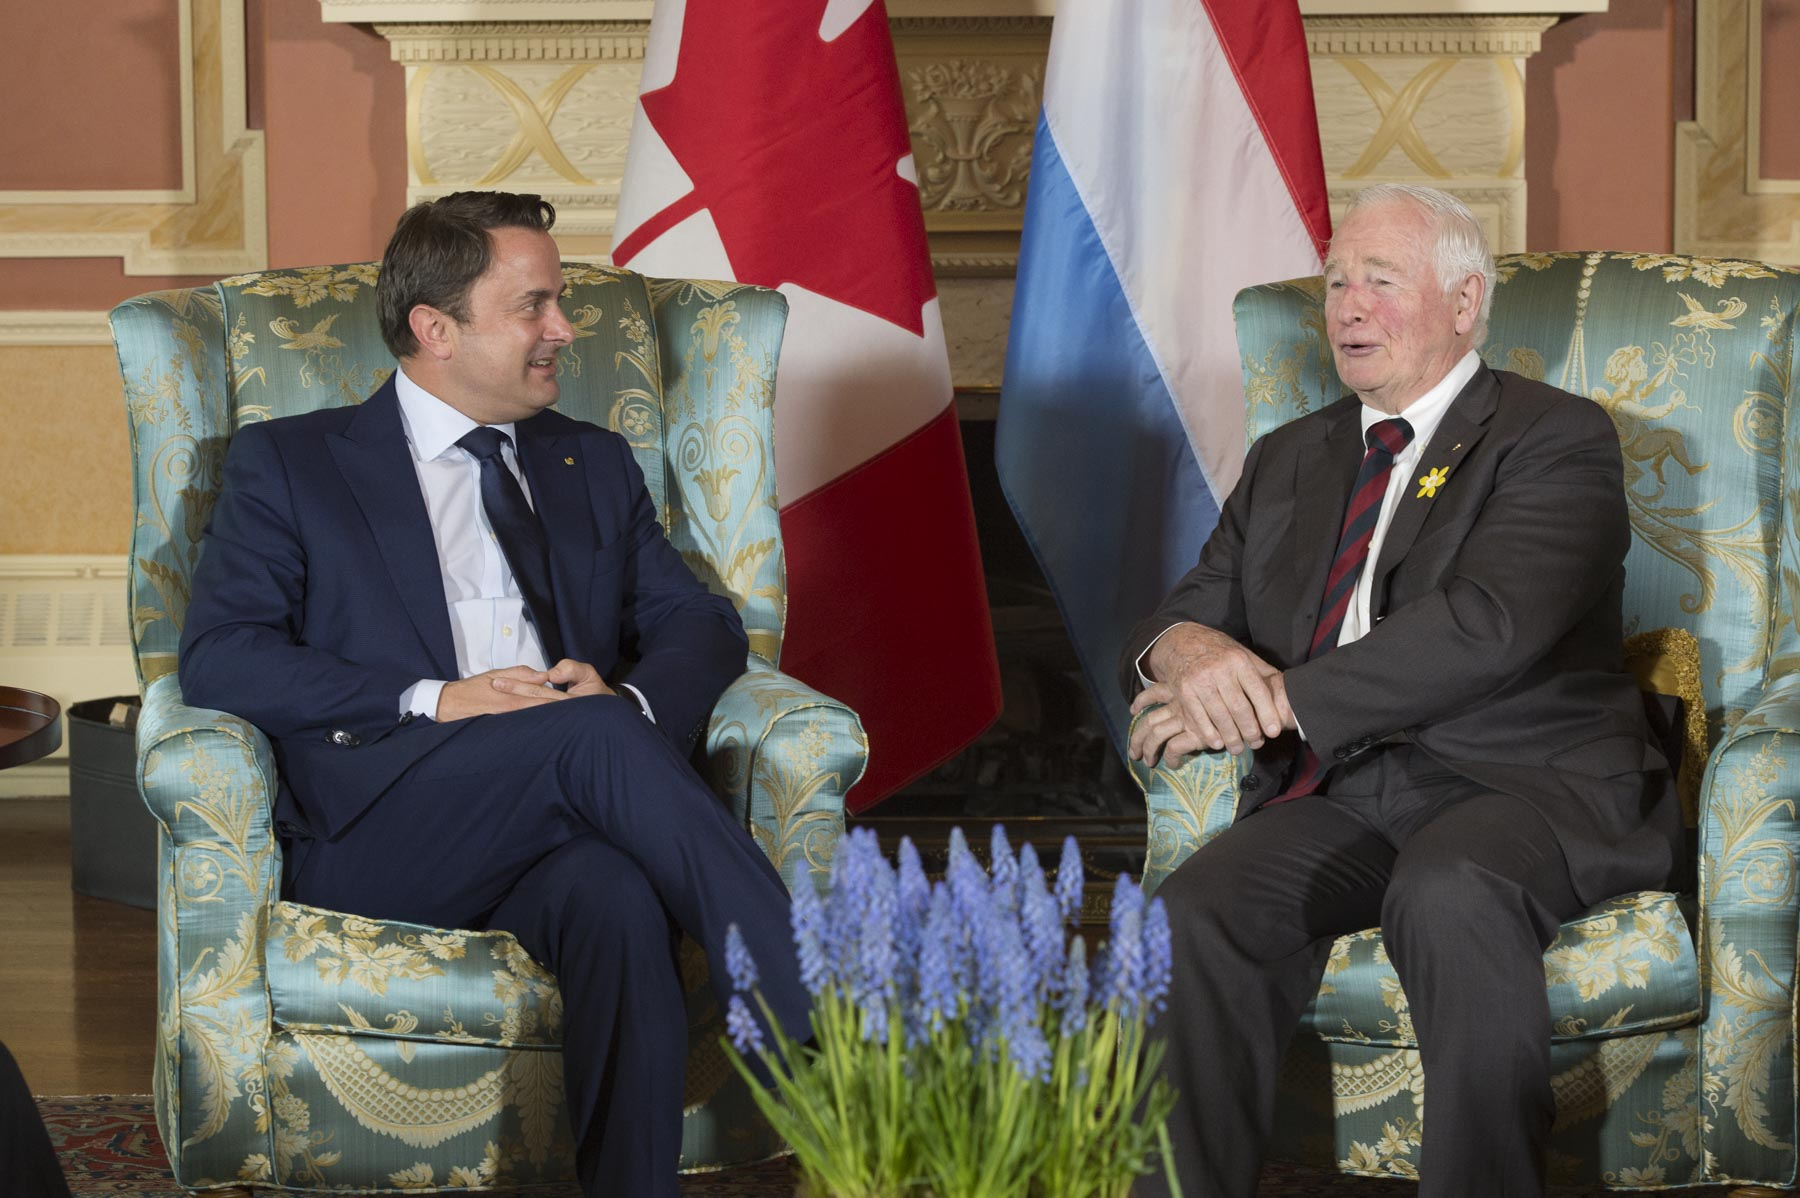 Prime Minister Bettel is in Canada for a working visit from April 18 to 20, 2017.